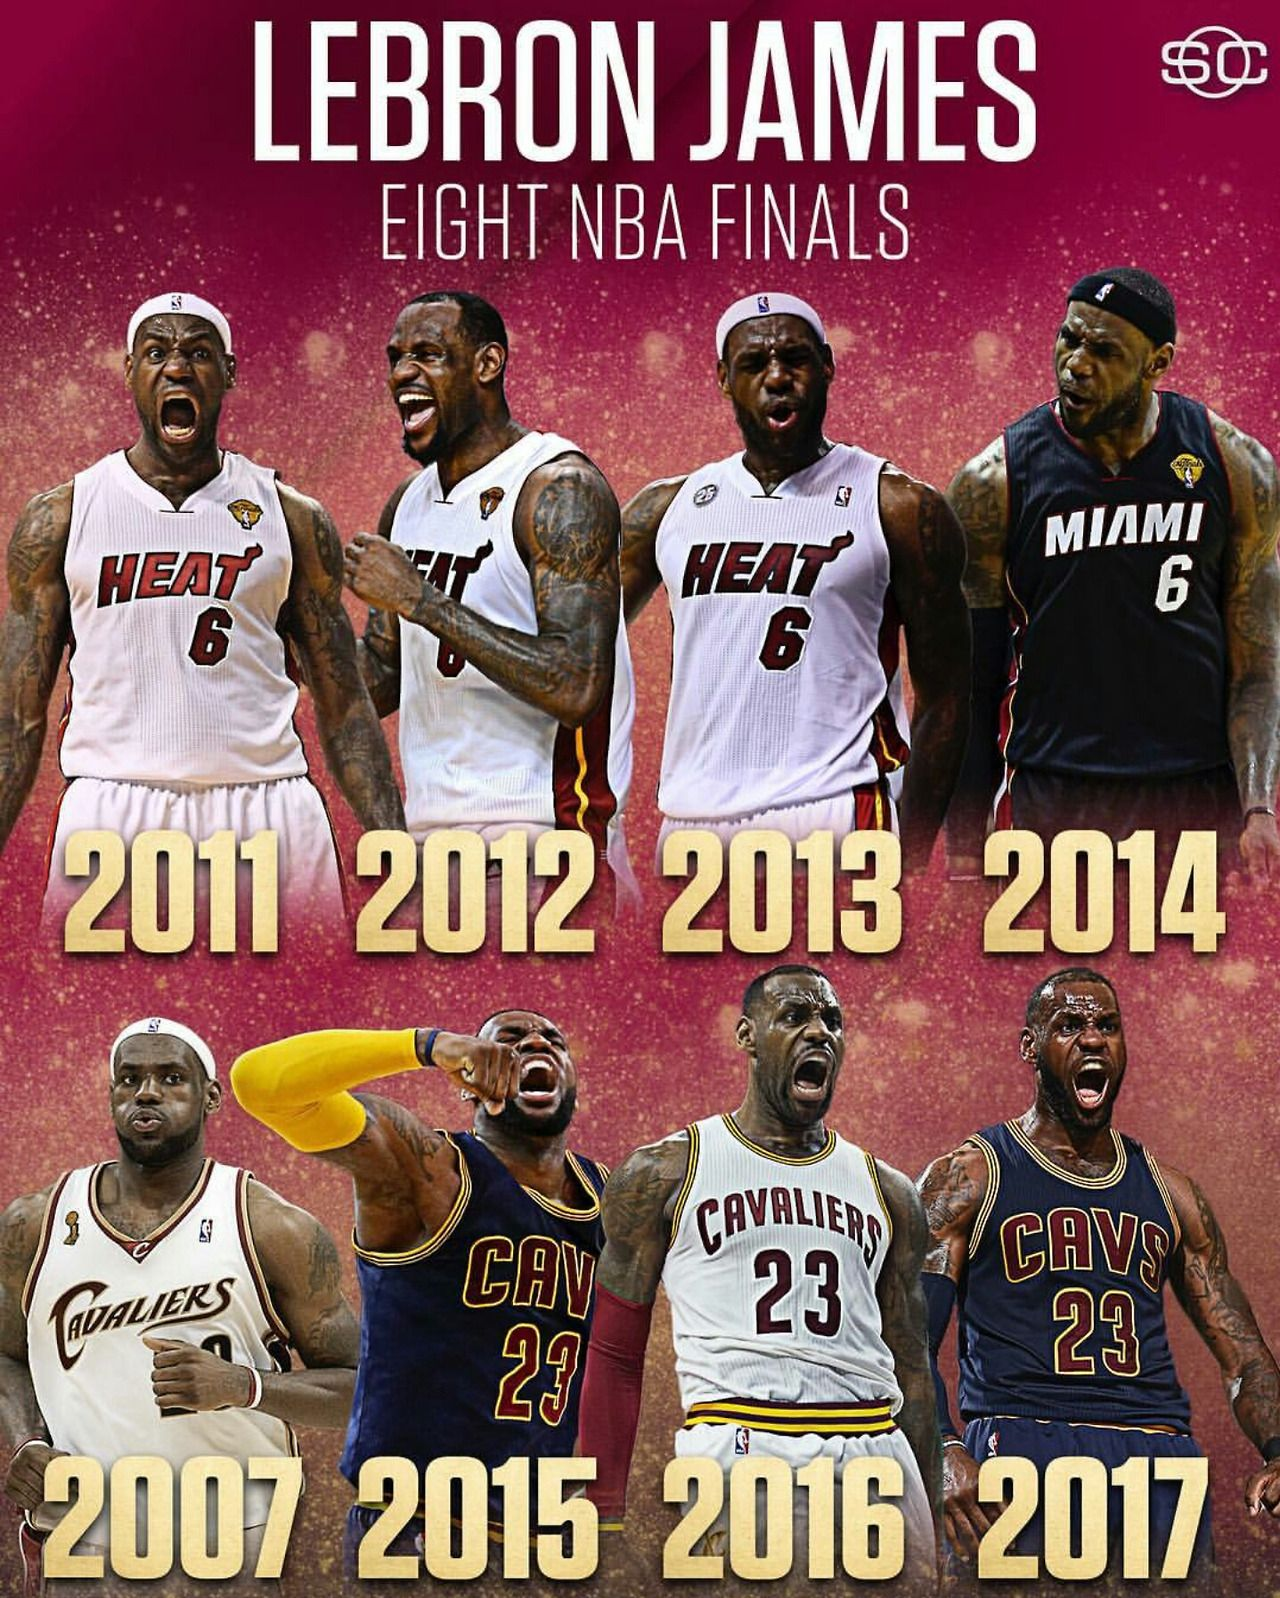 Pin By Harold Johns On Great Basketball Players In 2020 Lebron James Cleveland King Lebron James Lebron James